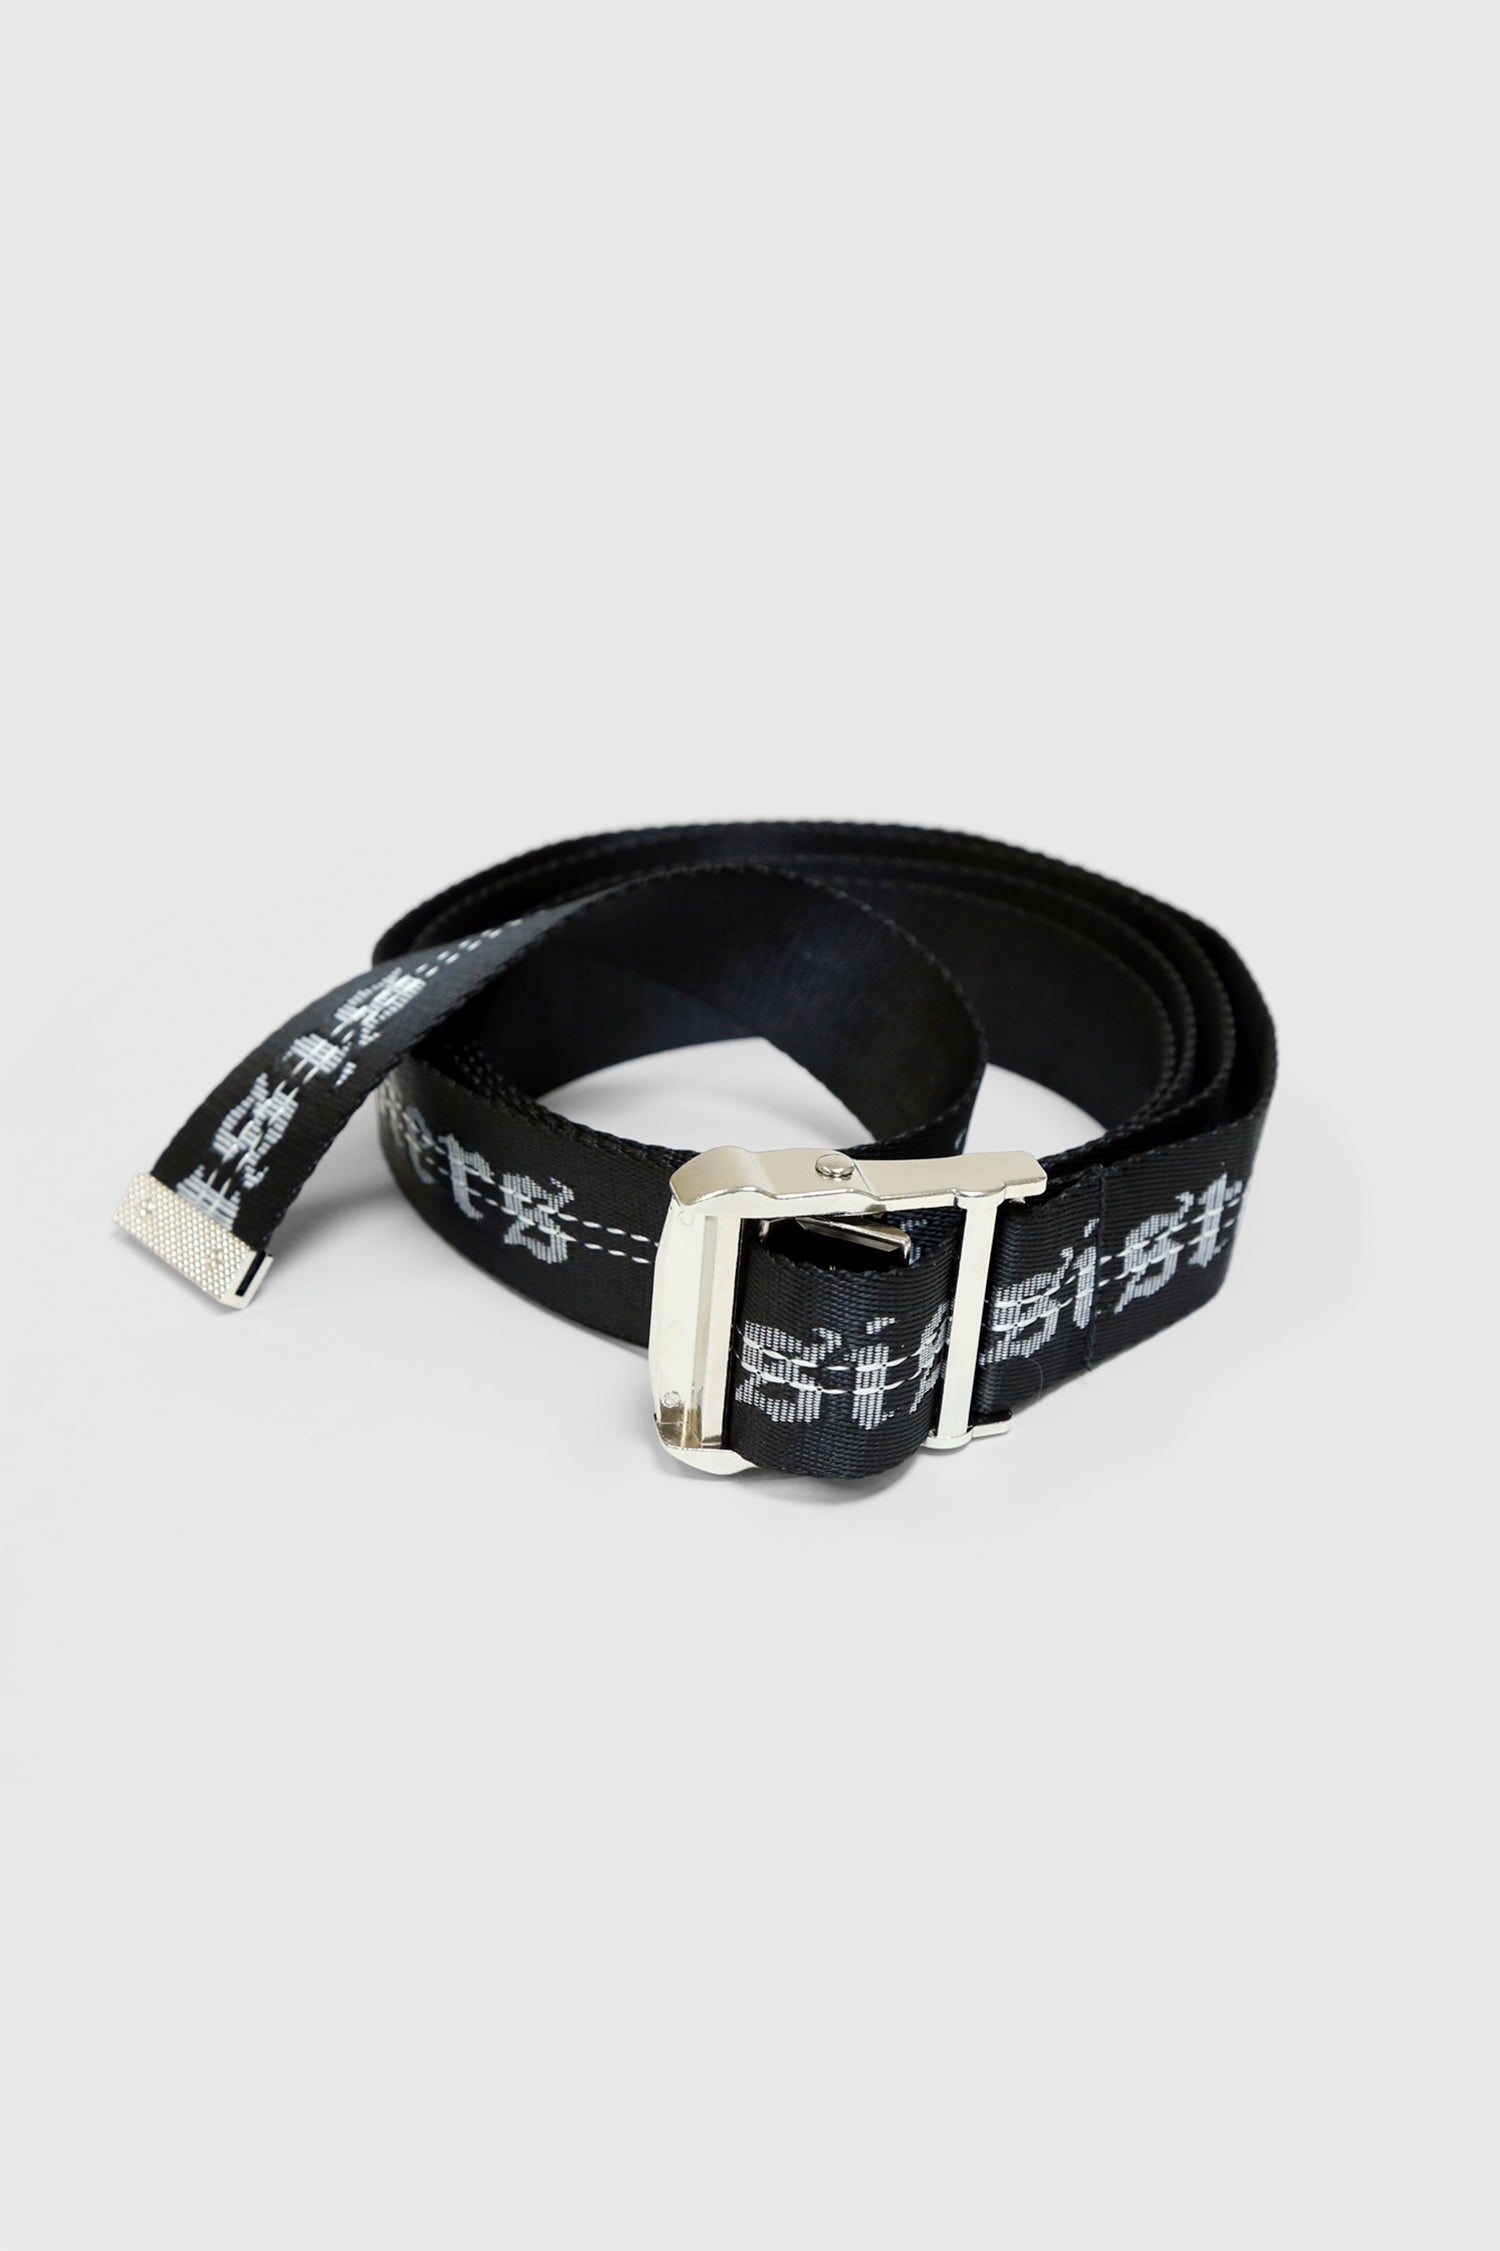 Originals Industrial Black Belt